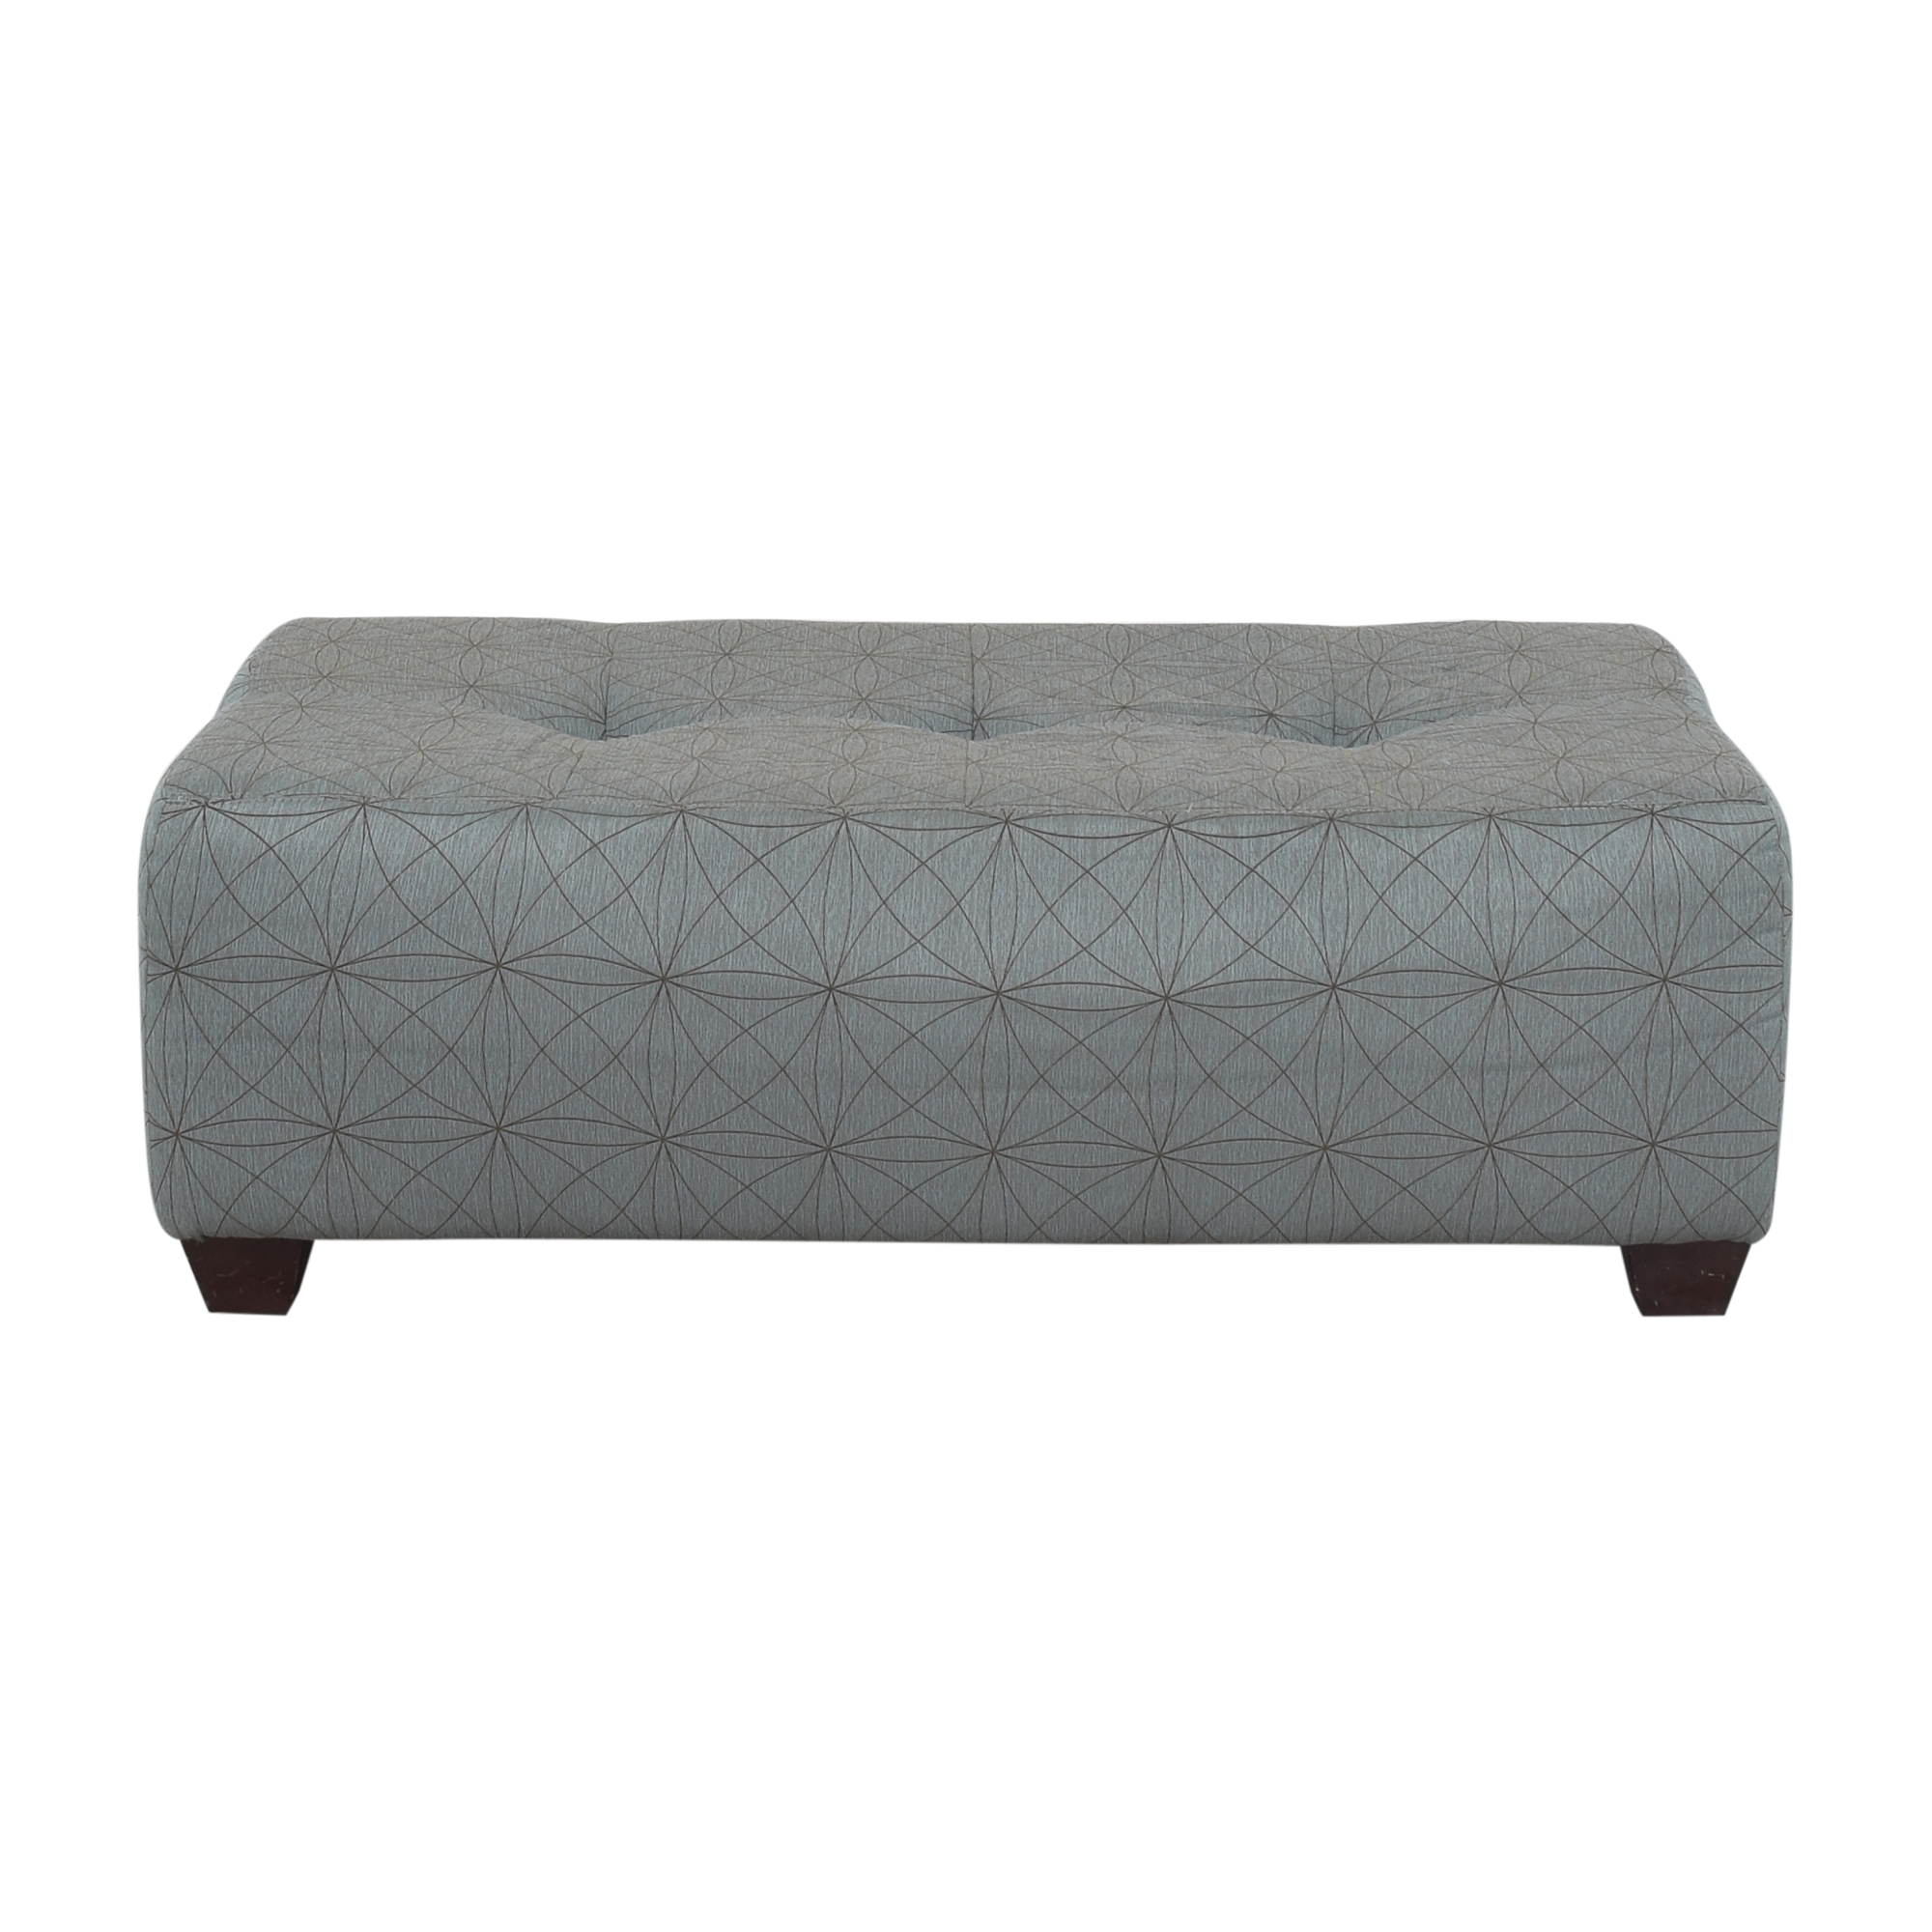 shop Patterned Tufted Ottoman